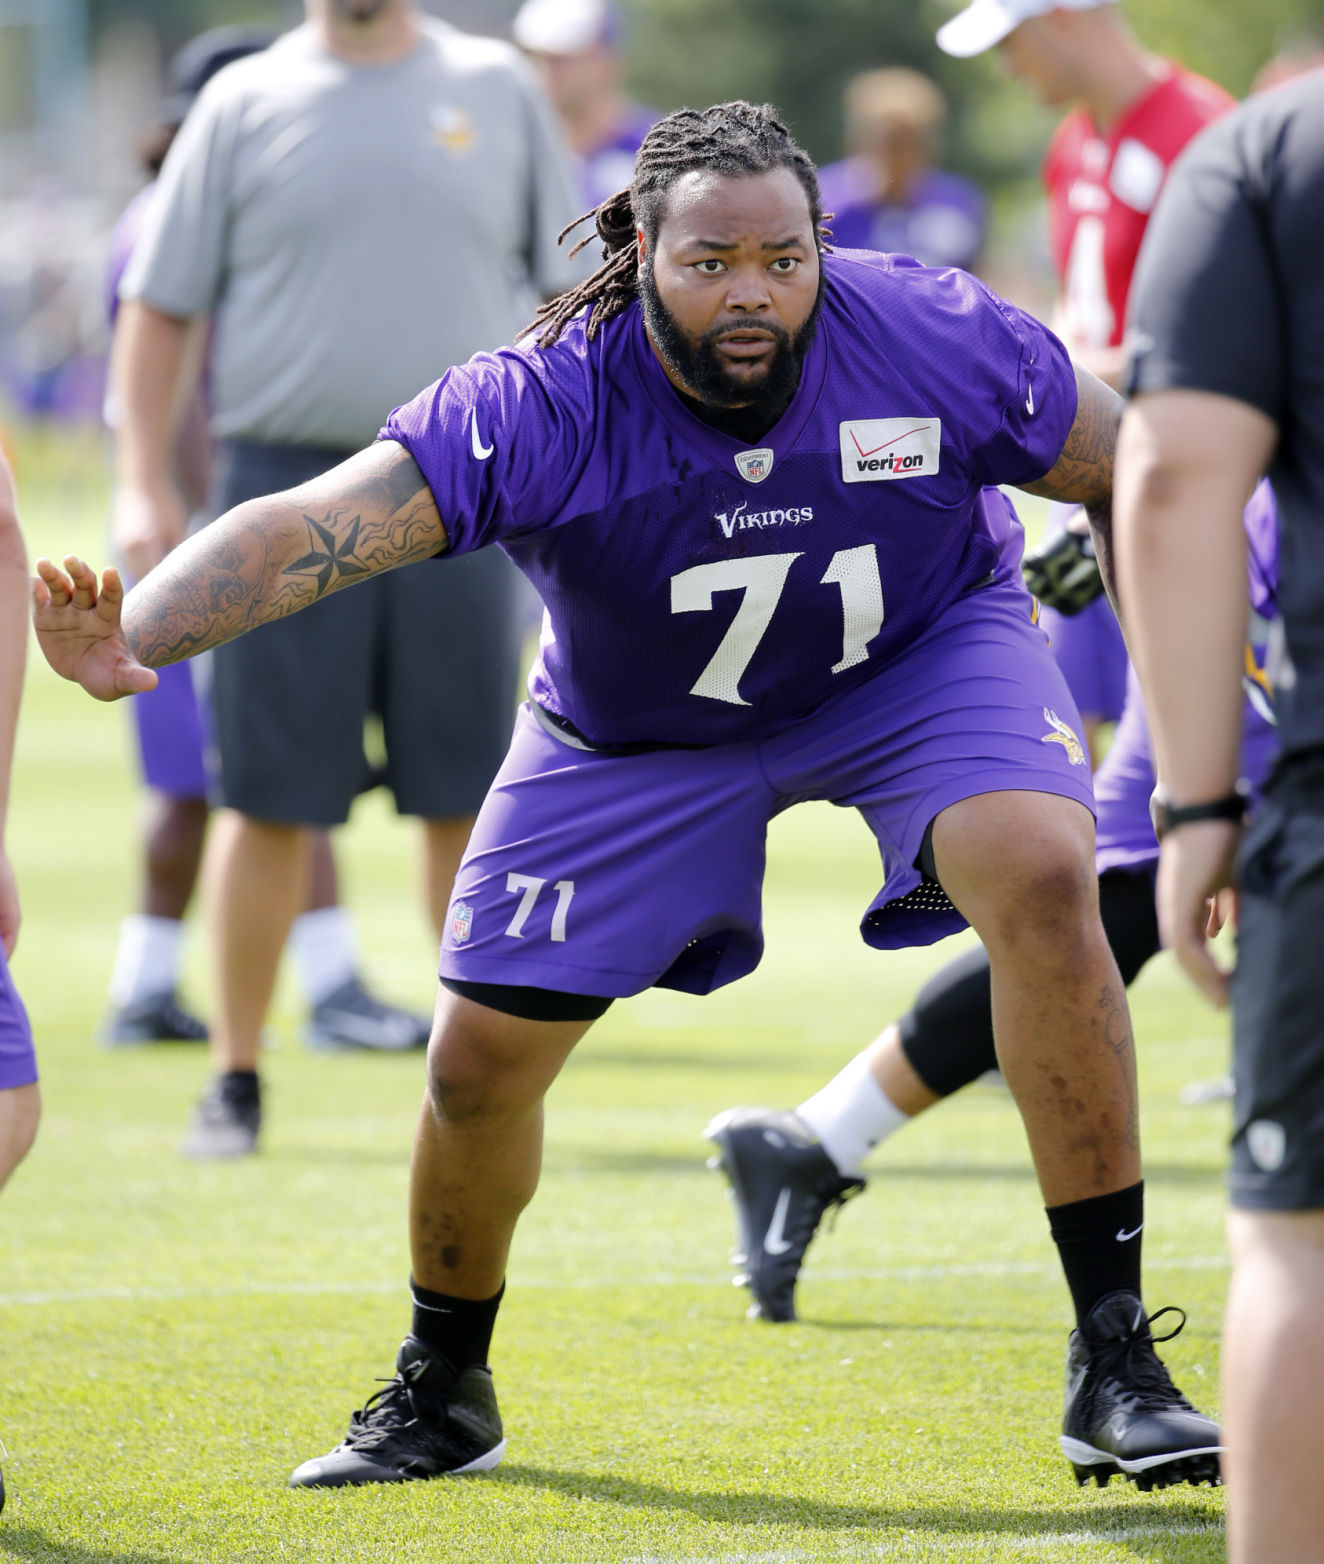 Latest injury pushes tackle Phil Loadholt into retirement | Sports ...